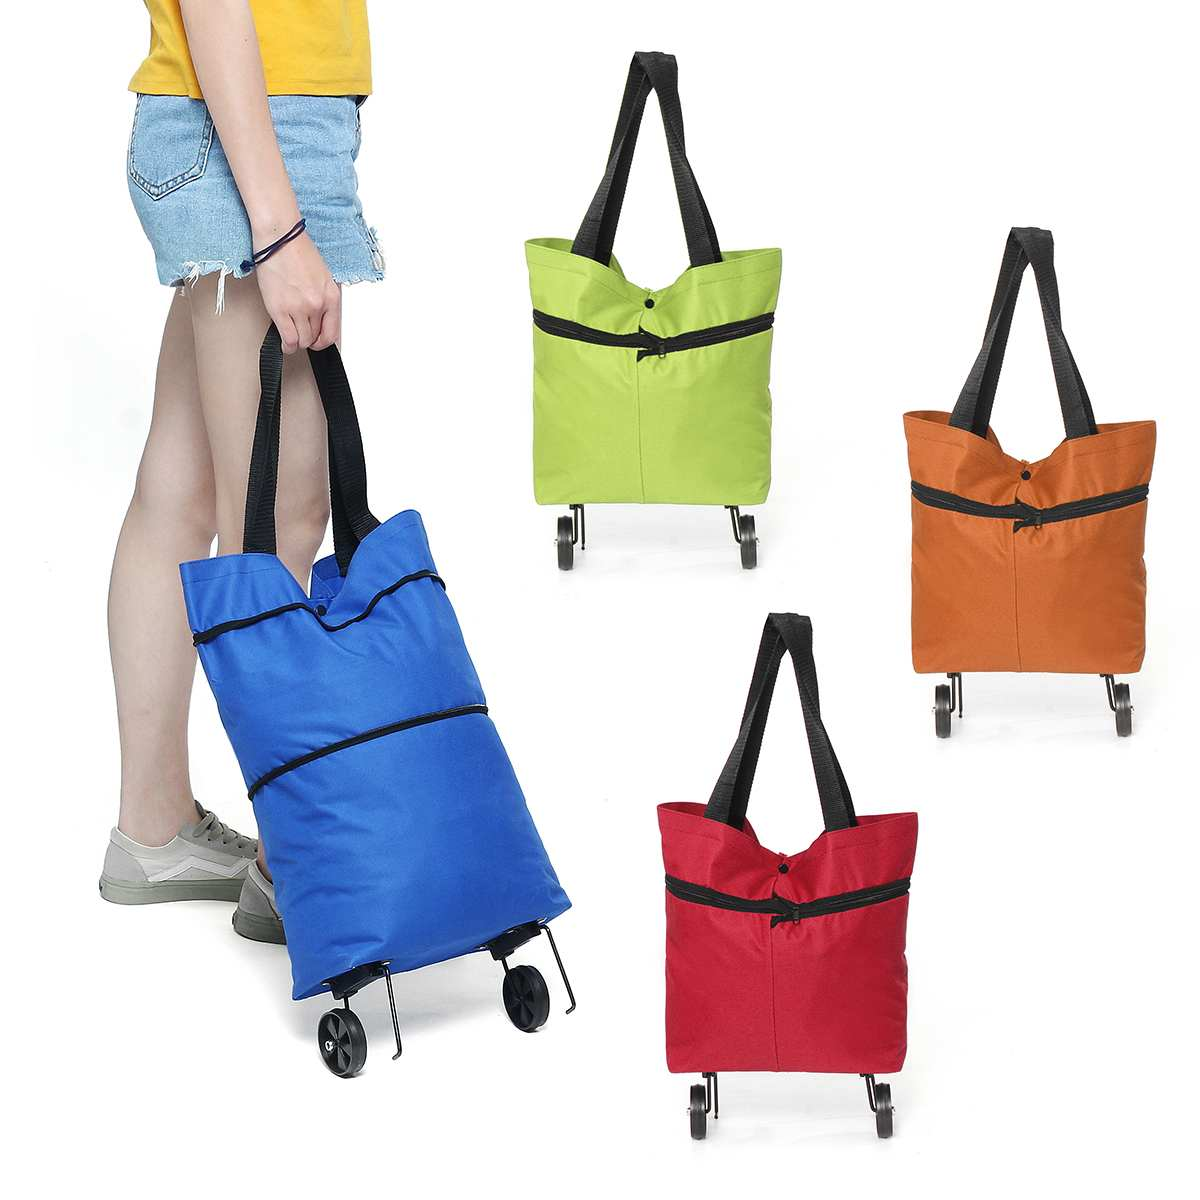 Osmond FoldiShopping Bag Shopping Cart On Wheels Bag Small Pull Cart Women Buy Vegetables Bag Shopping Organizer Tug Package 5.0